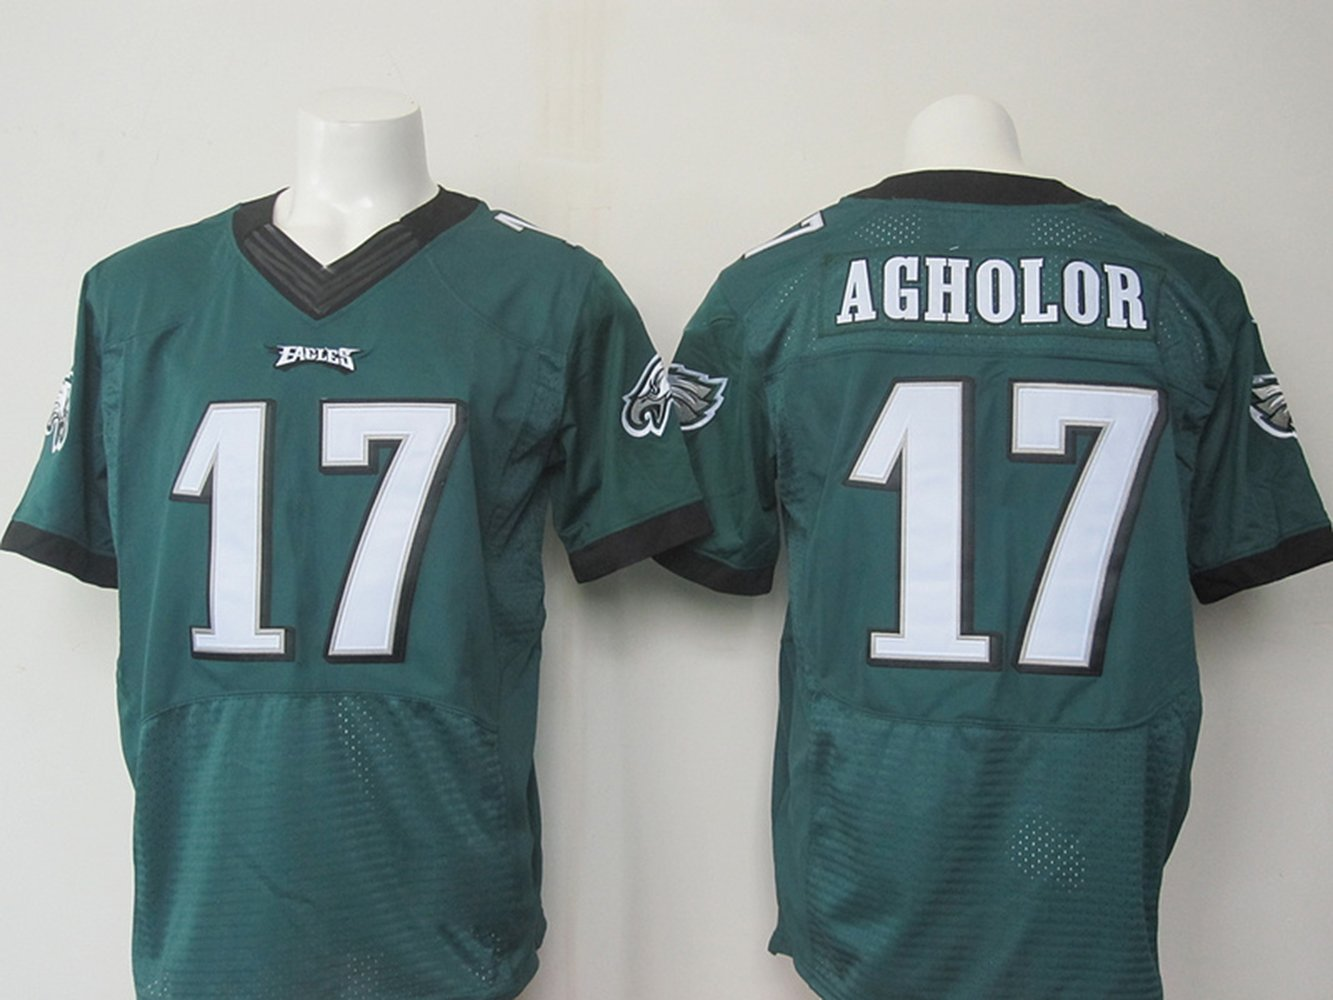 a53185aef14 ... greece philadelphia mens eagles football jersey 17 nelson agholor green  l amazon books 56de9 d81a9